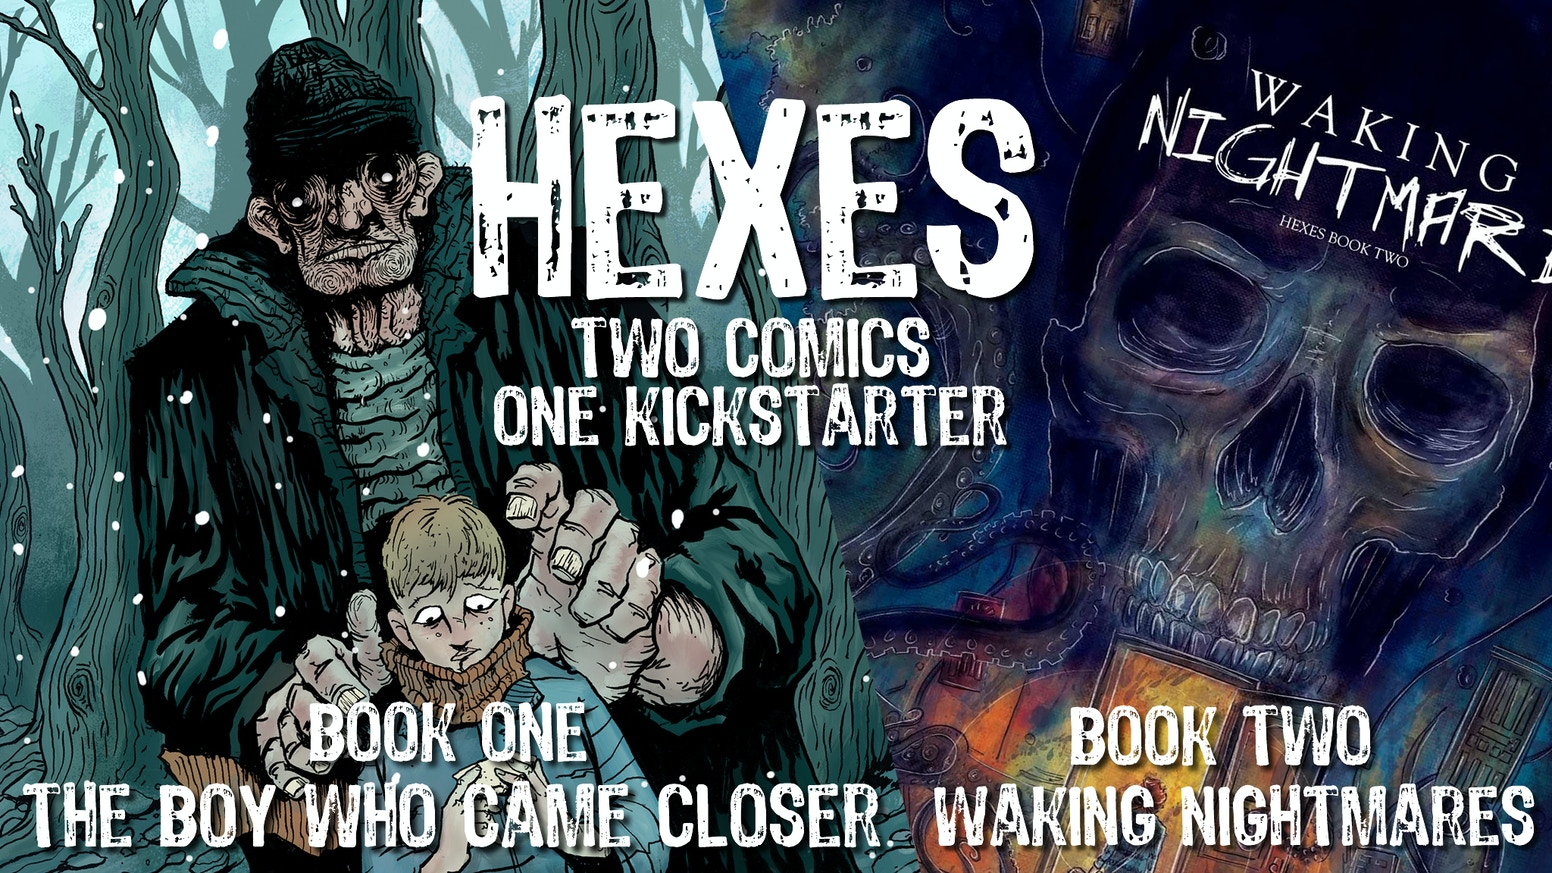 Enter the world of Hexes - one-shot supernatural/horror comics written by Simon Birks and drawn by some of the best artists today!